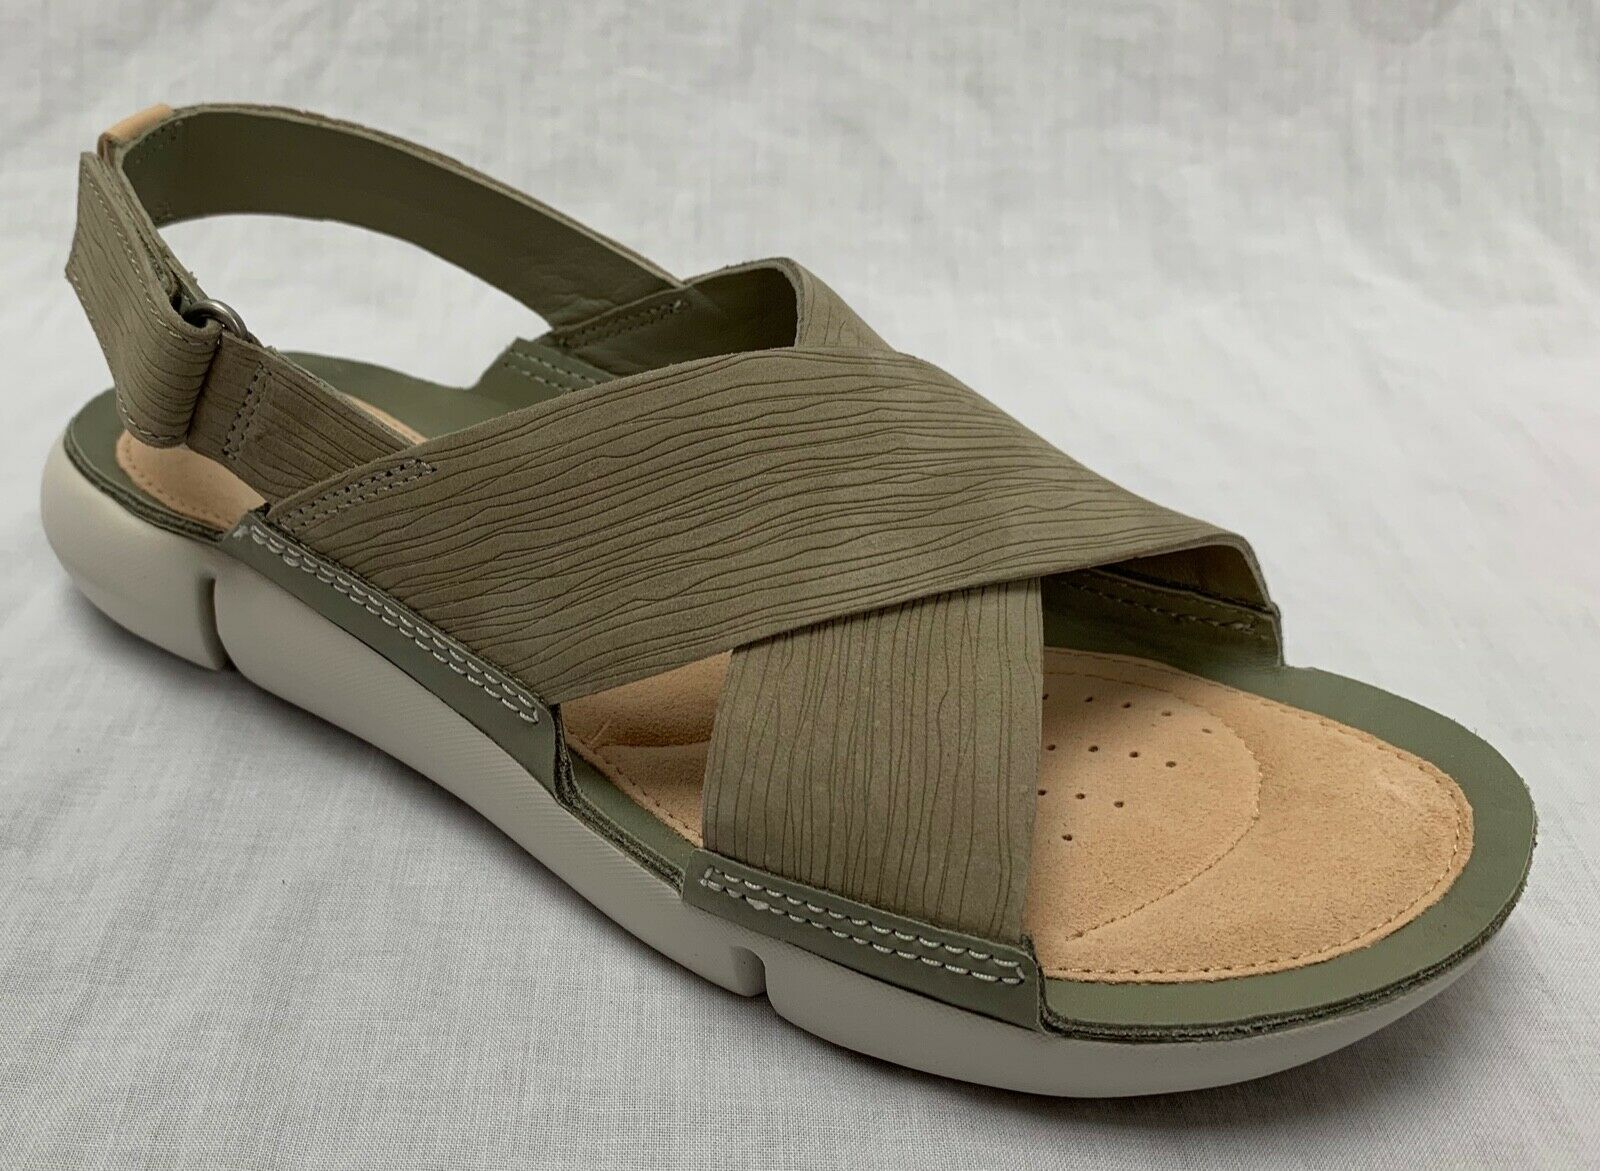 BNIB Clarks Ladies Tri Chloe Trigenic Light Green Nubuck Leather Flat Sandals